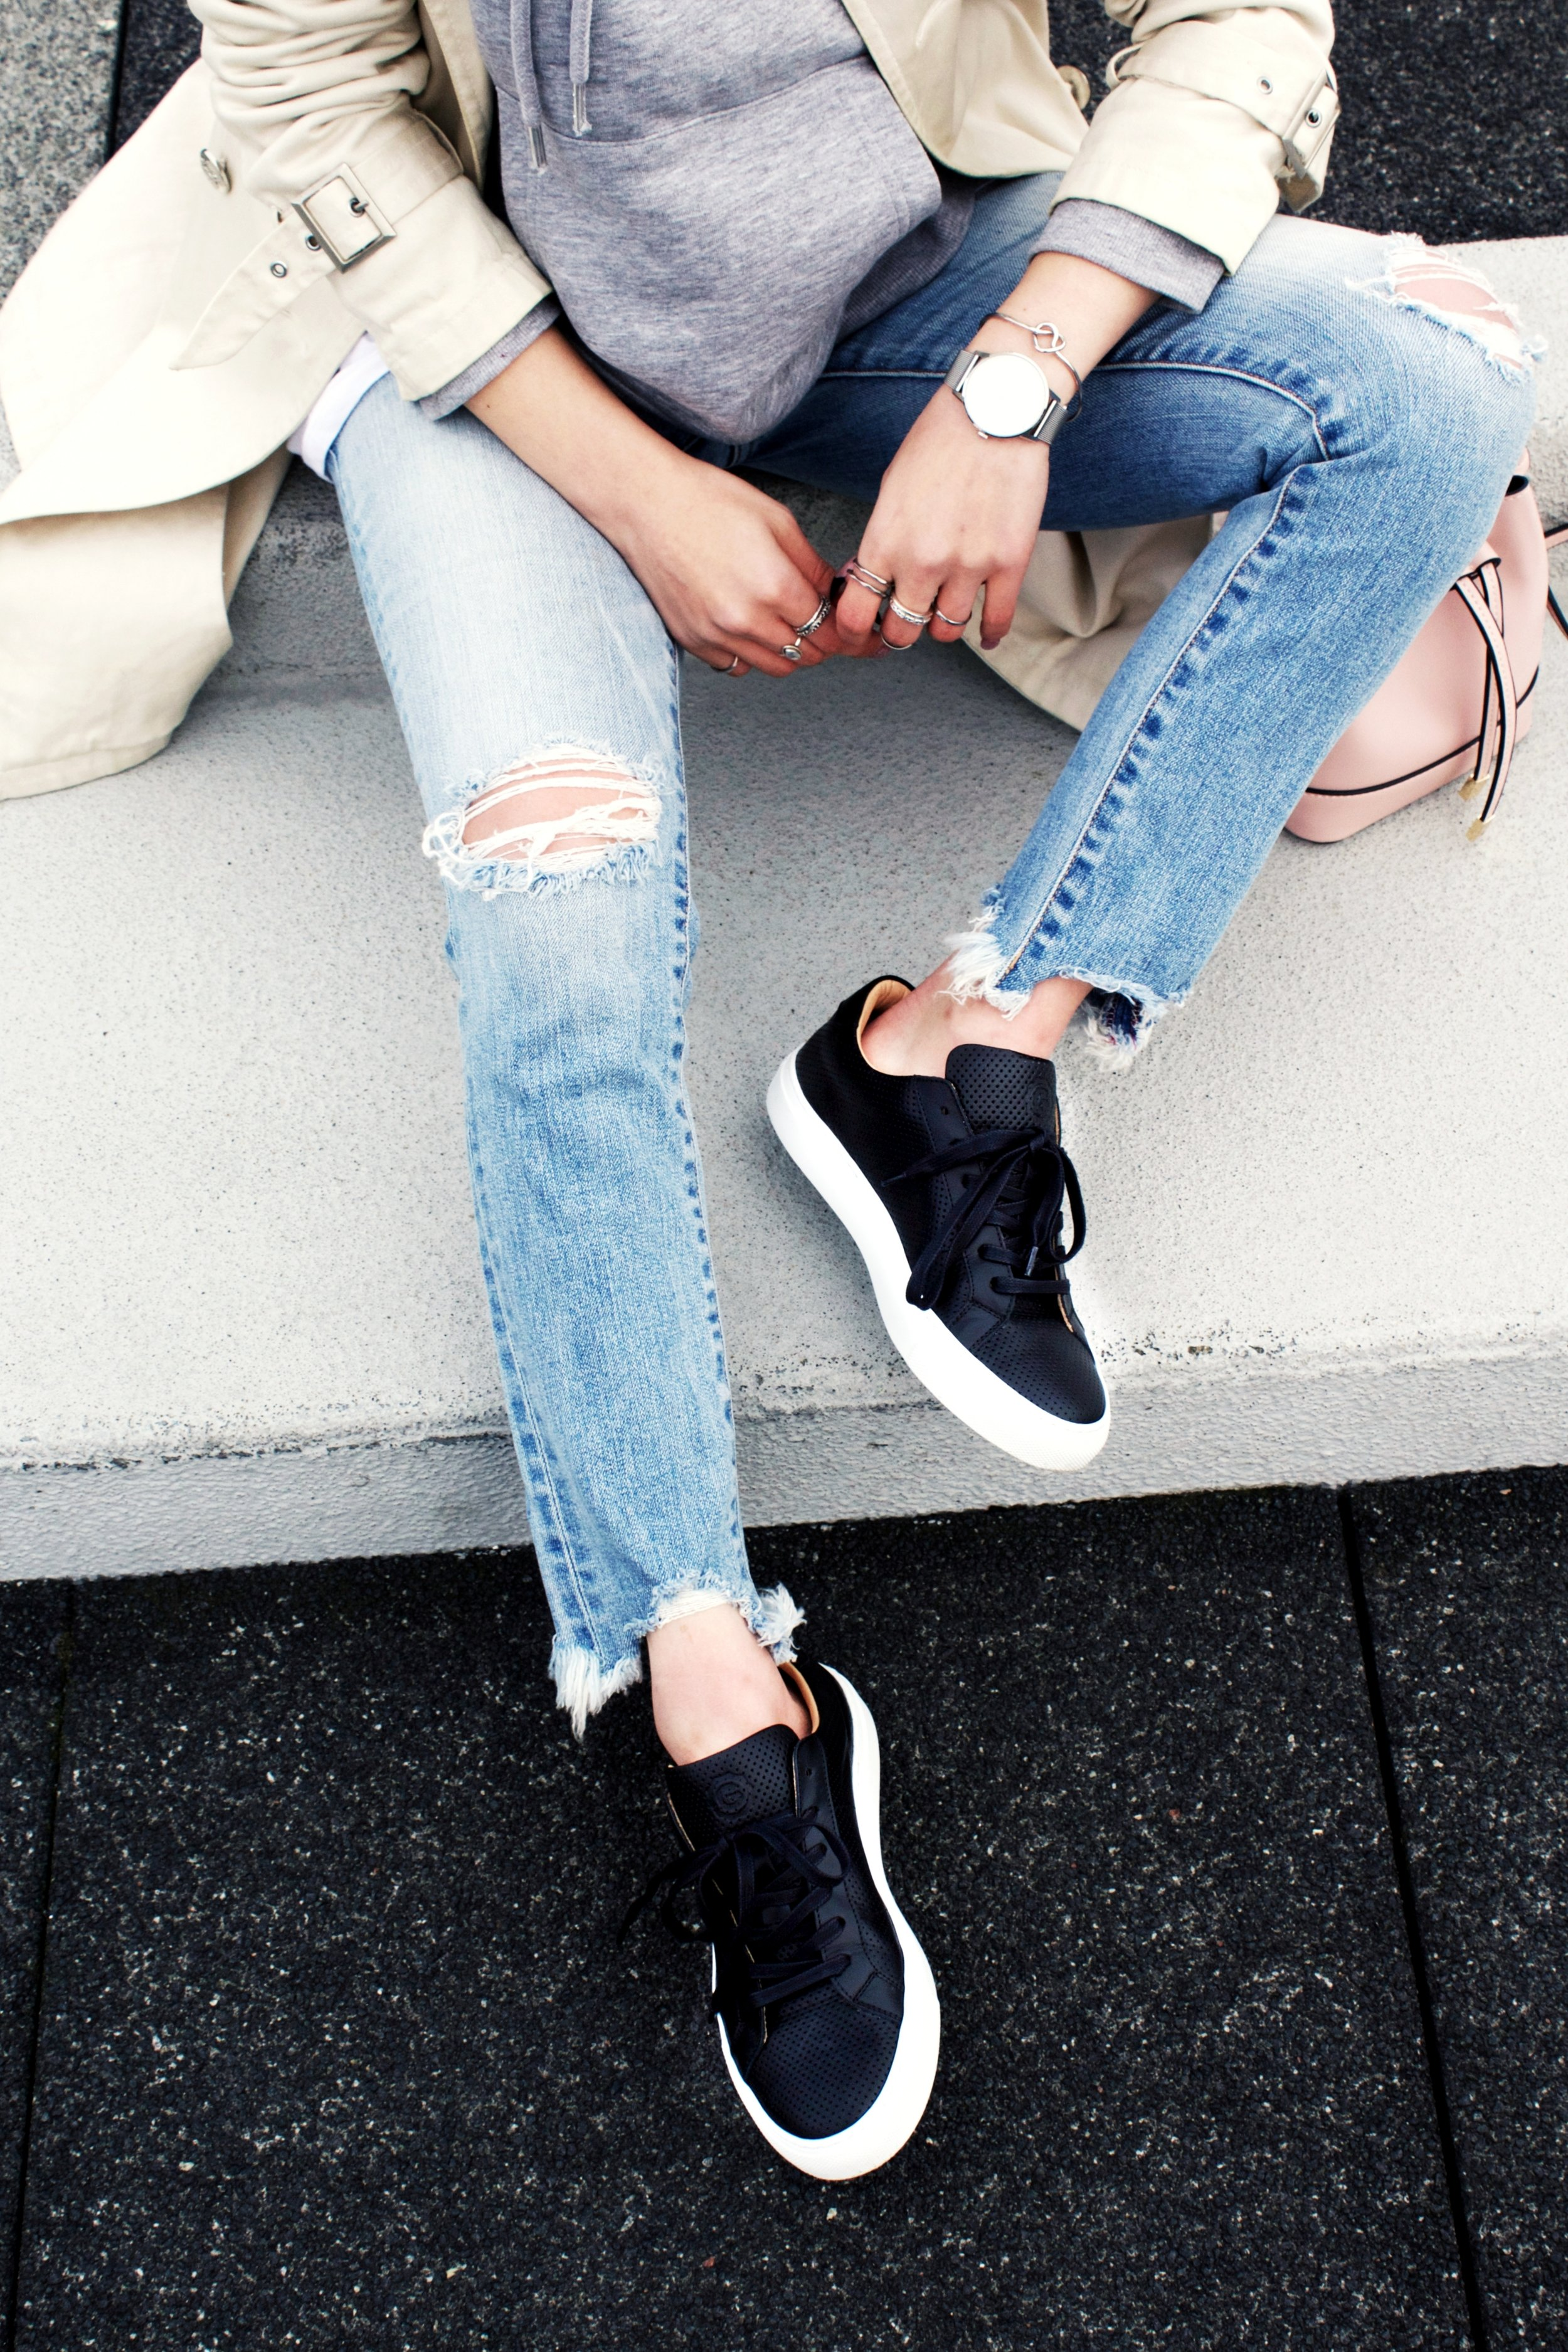 Greats THE ROYALE_Black Leather Sneakers_Aikas love Closet_Seattle Fashion Style Blogger_Japanese 2